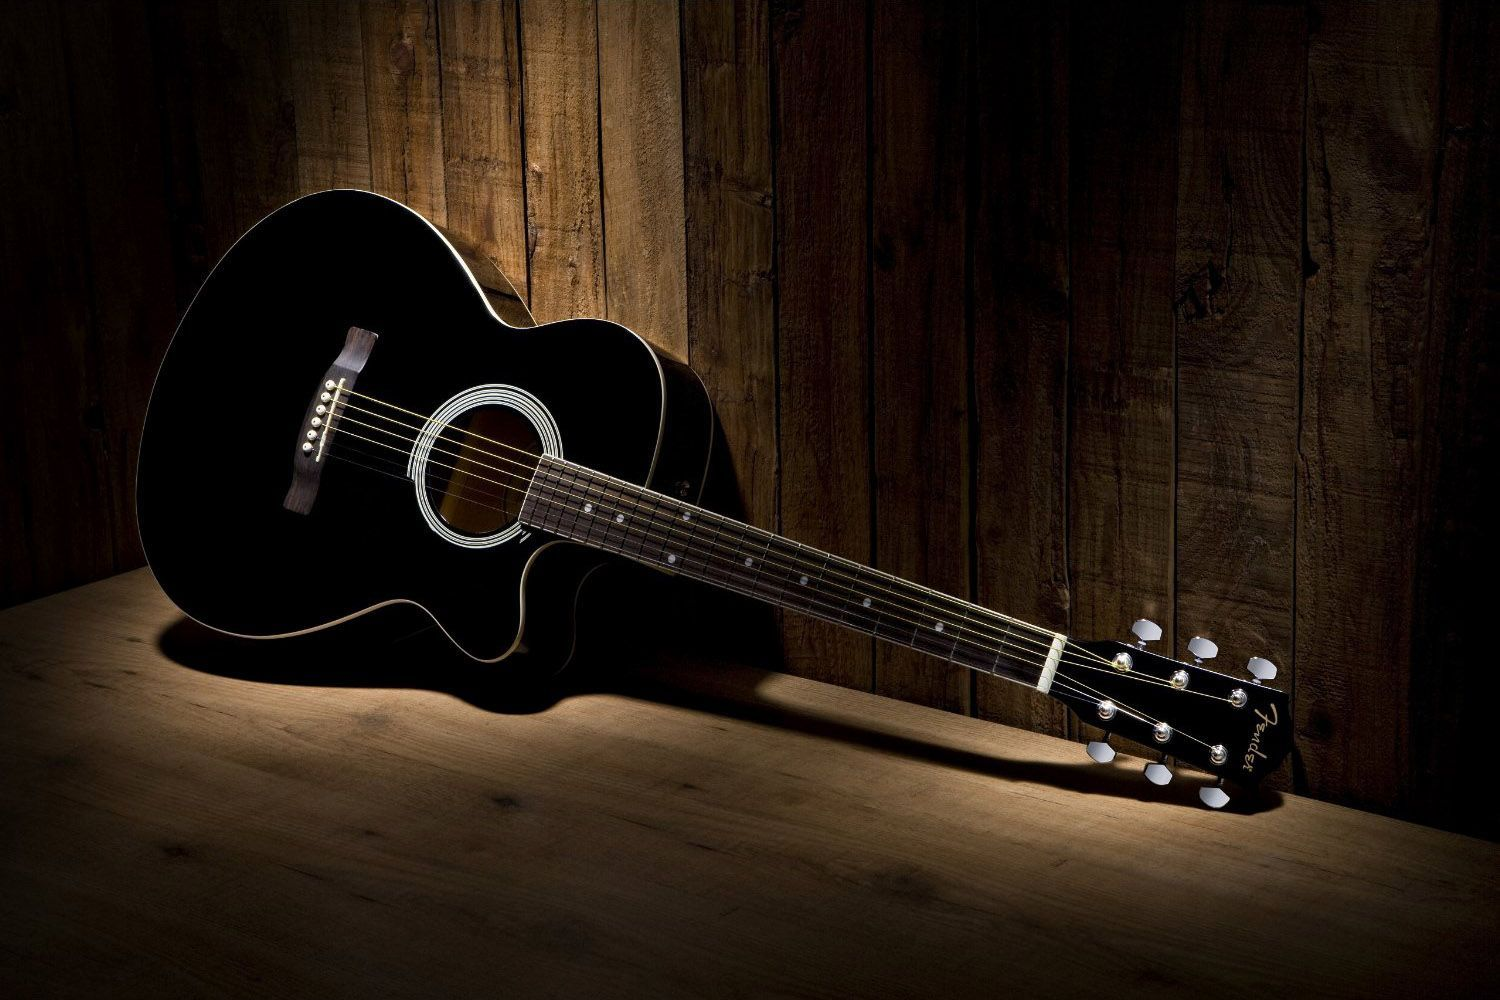 Guitar HD Wallpapers For Desktop